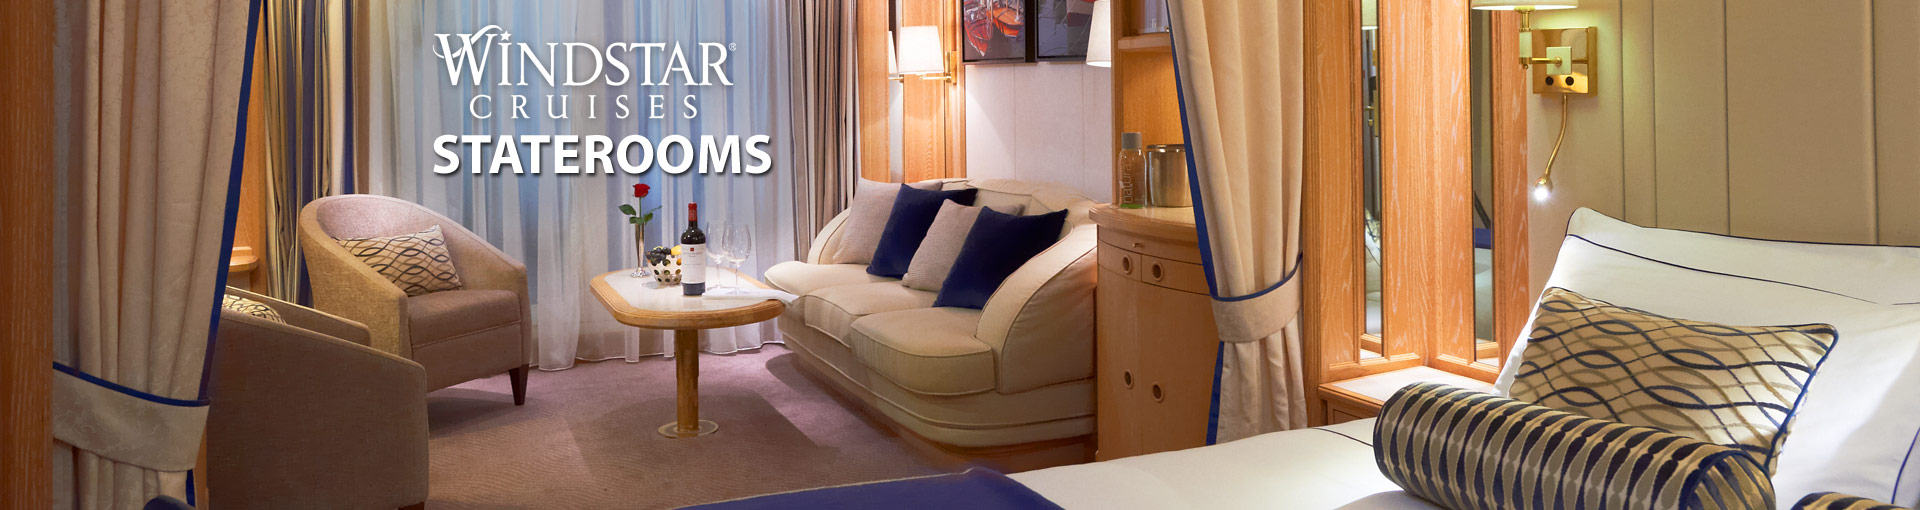 Windstar Cruises Staterooms